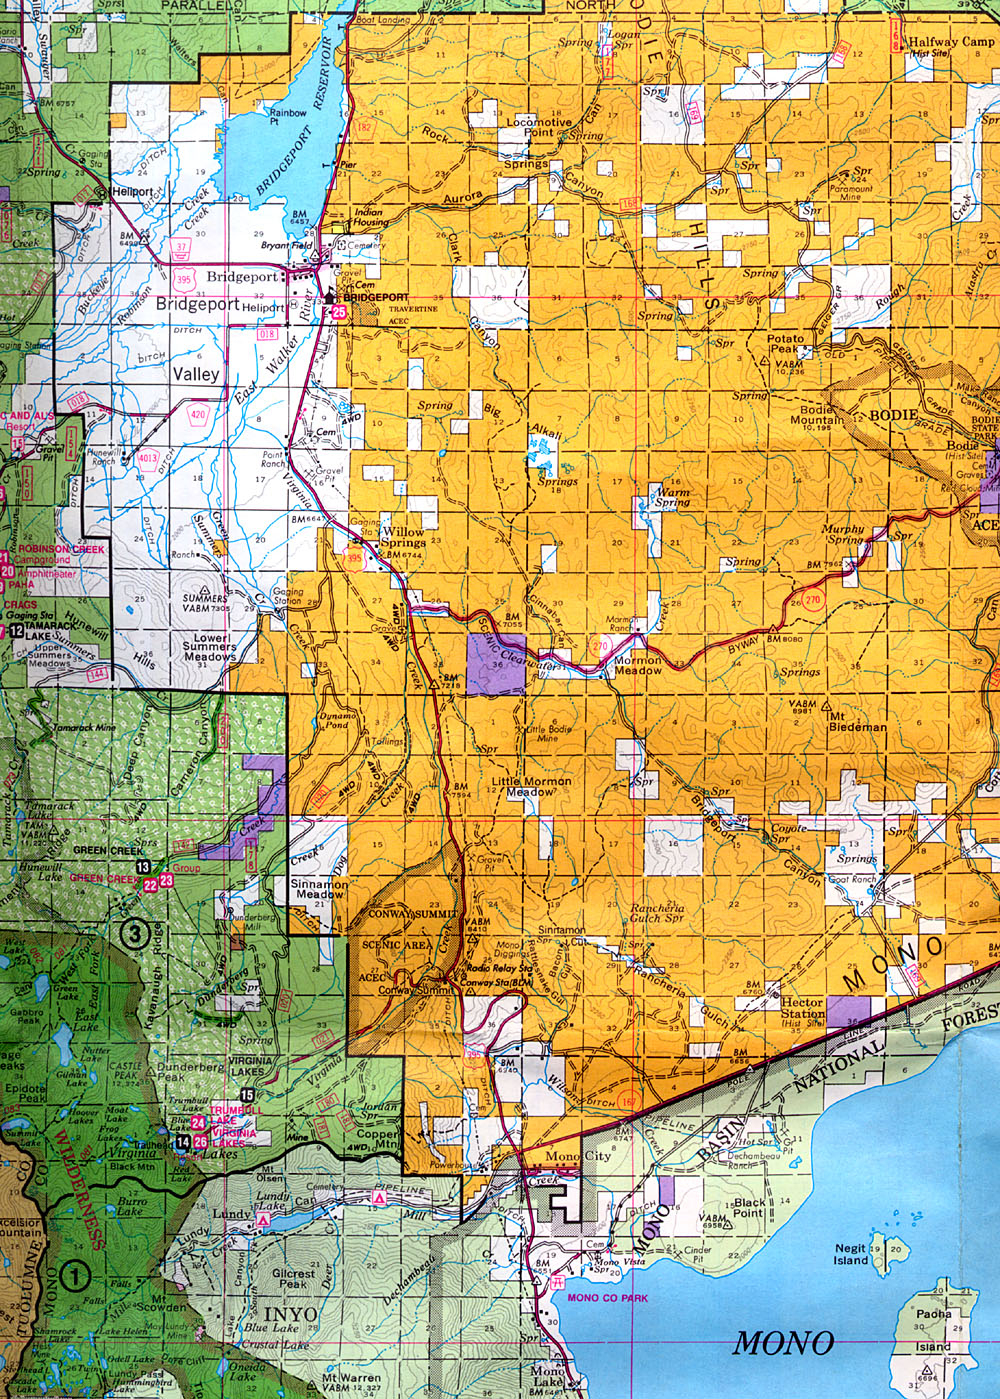 Buy And Find California Maps: Bureau Of Land Management: Northern - California D5 Hunting Zone Map